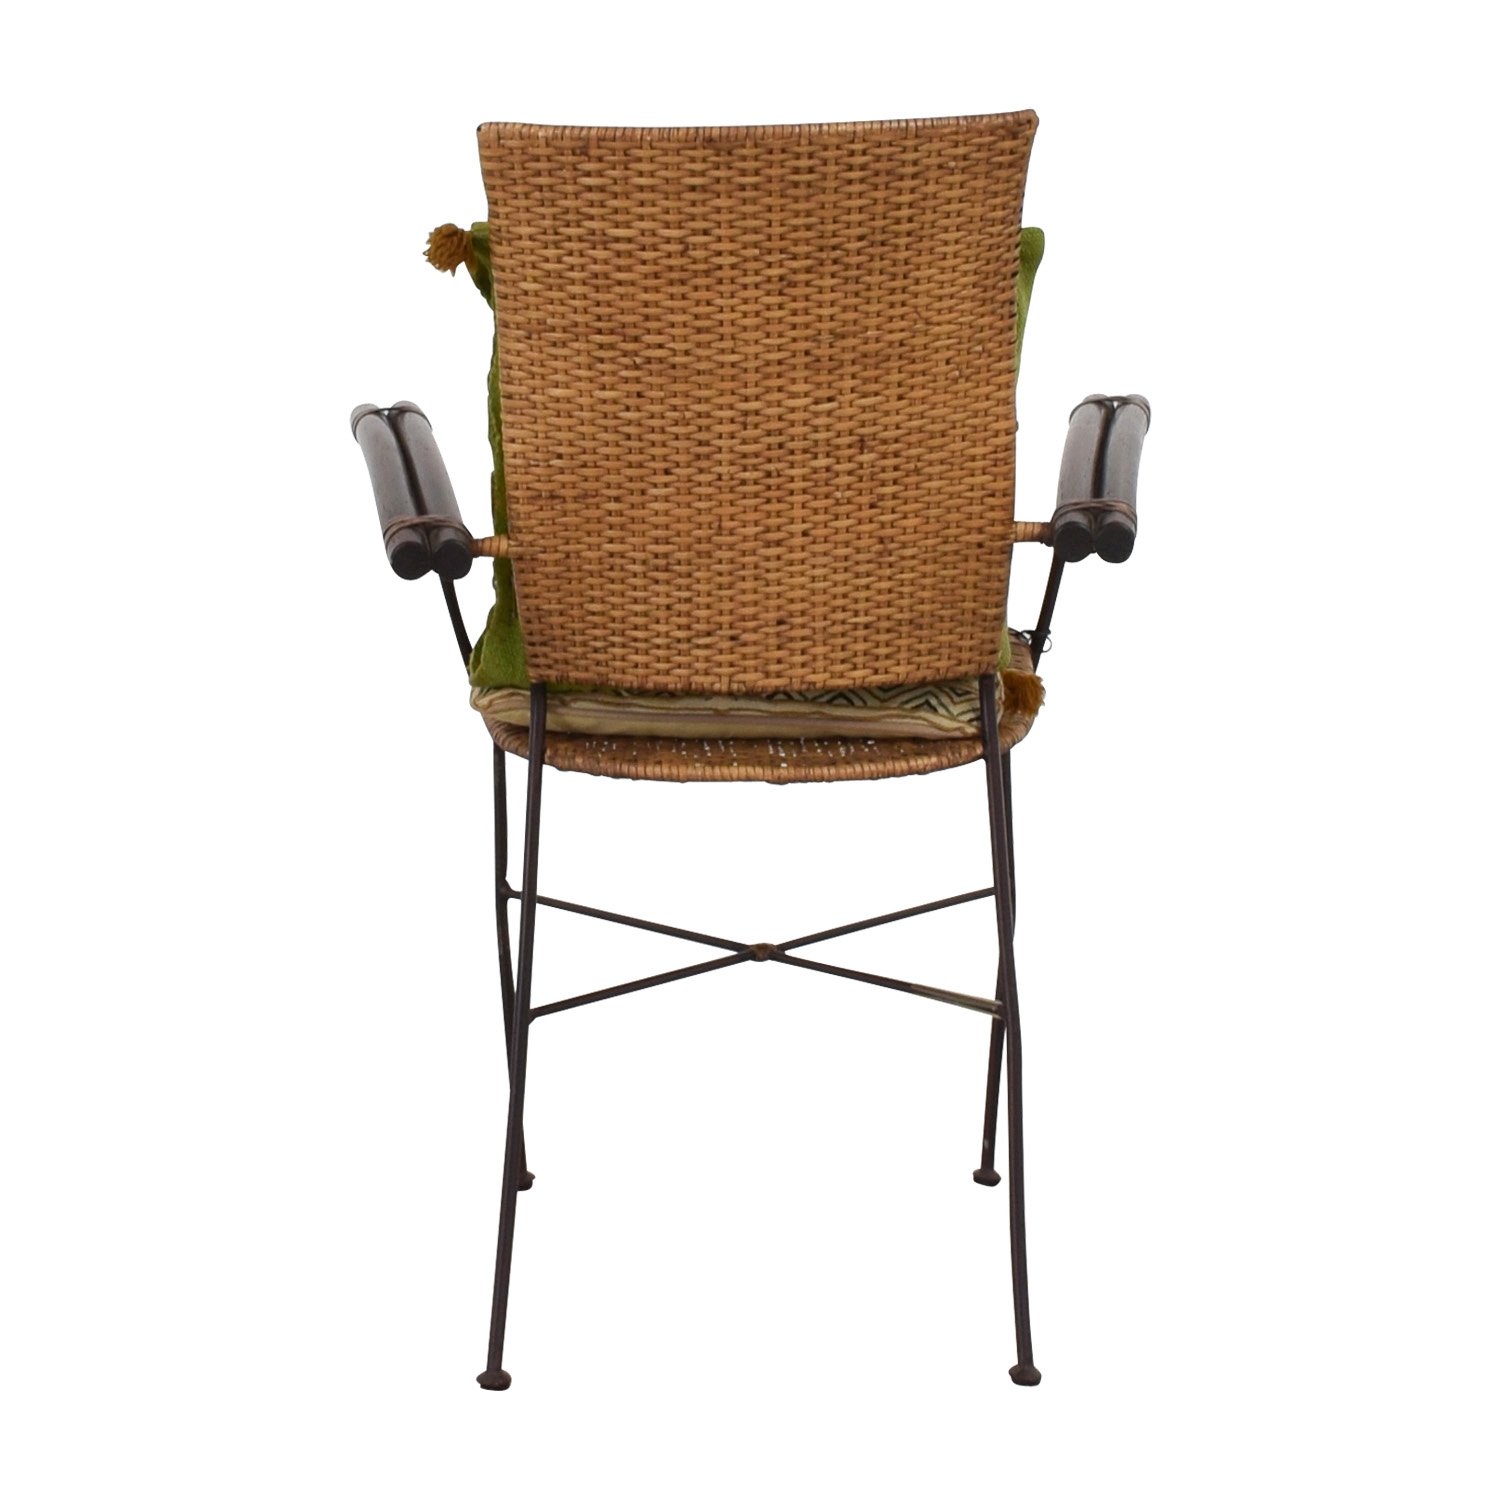 45 Off Wicker Chair With Bamboo Arms Chairs